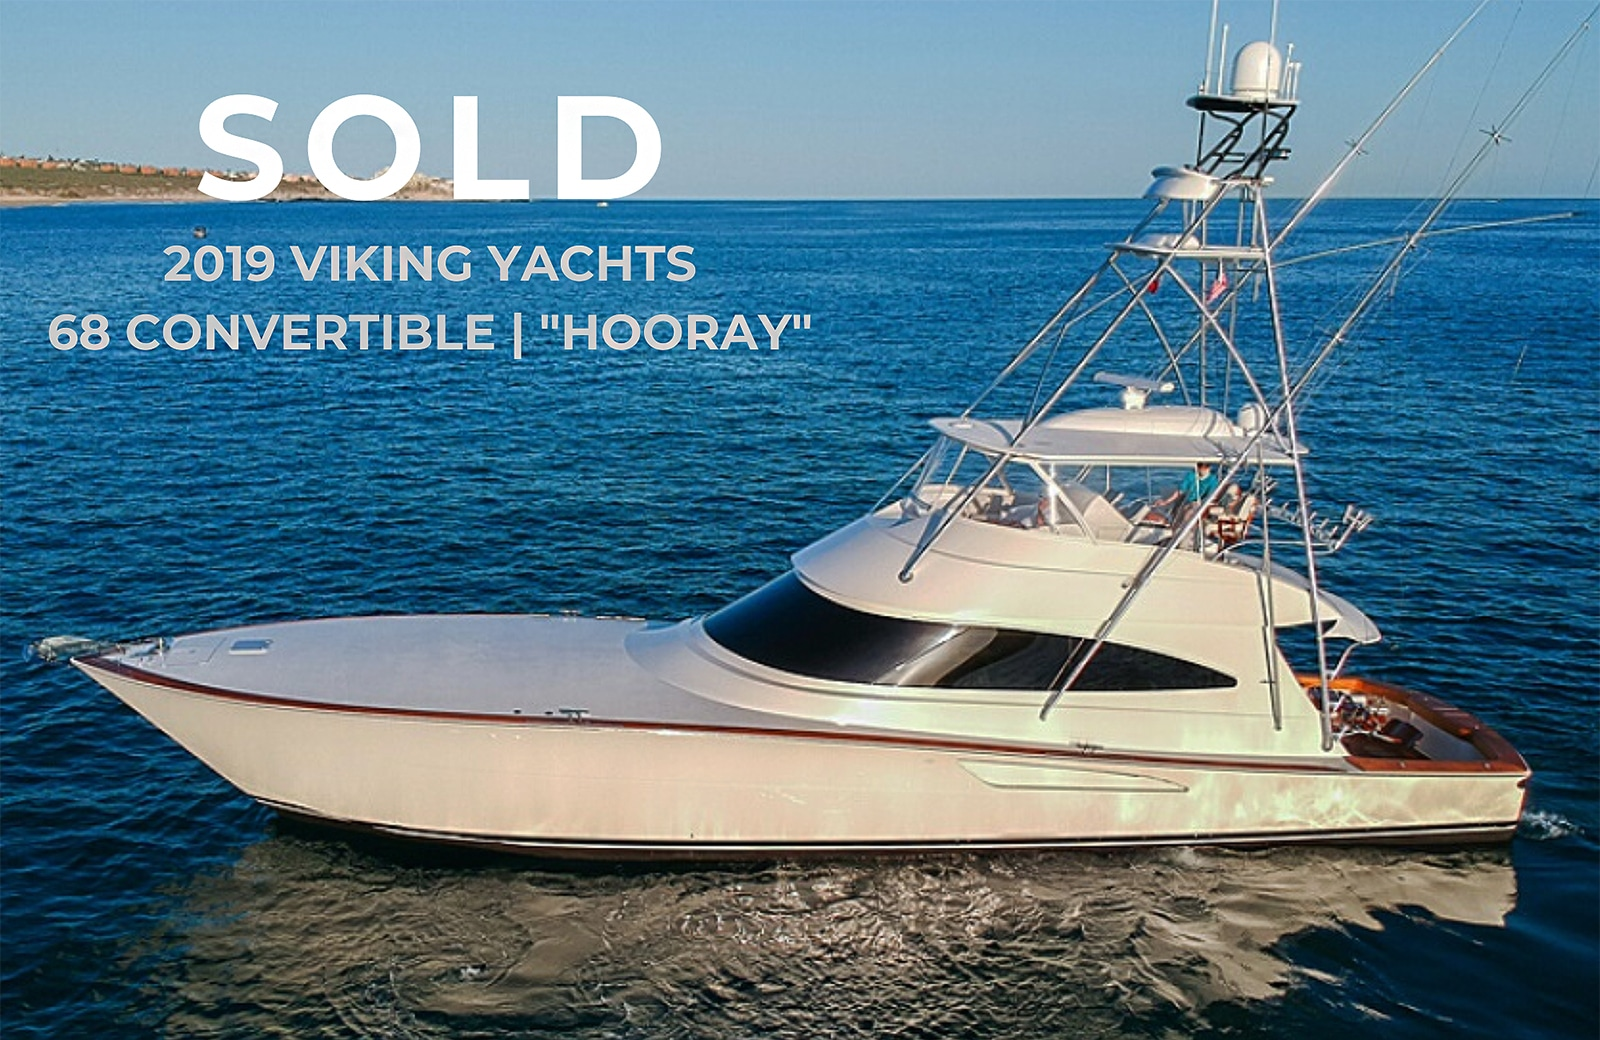 Sold 2019 68 Viking Yacht Convertible Hooray